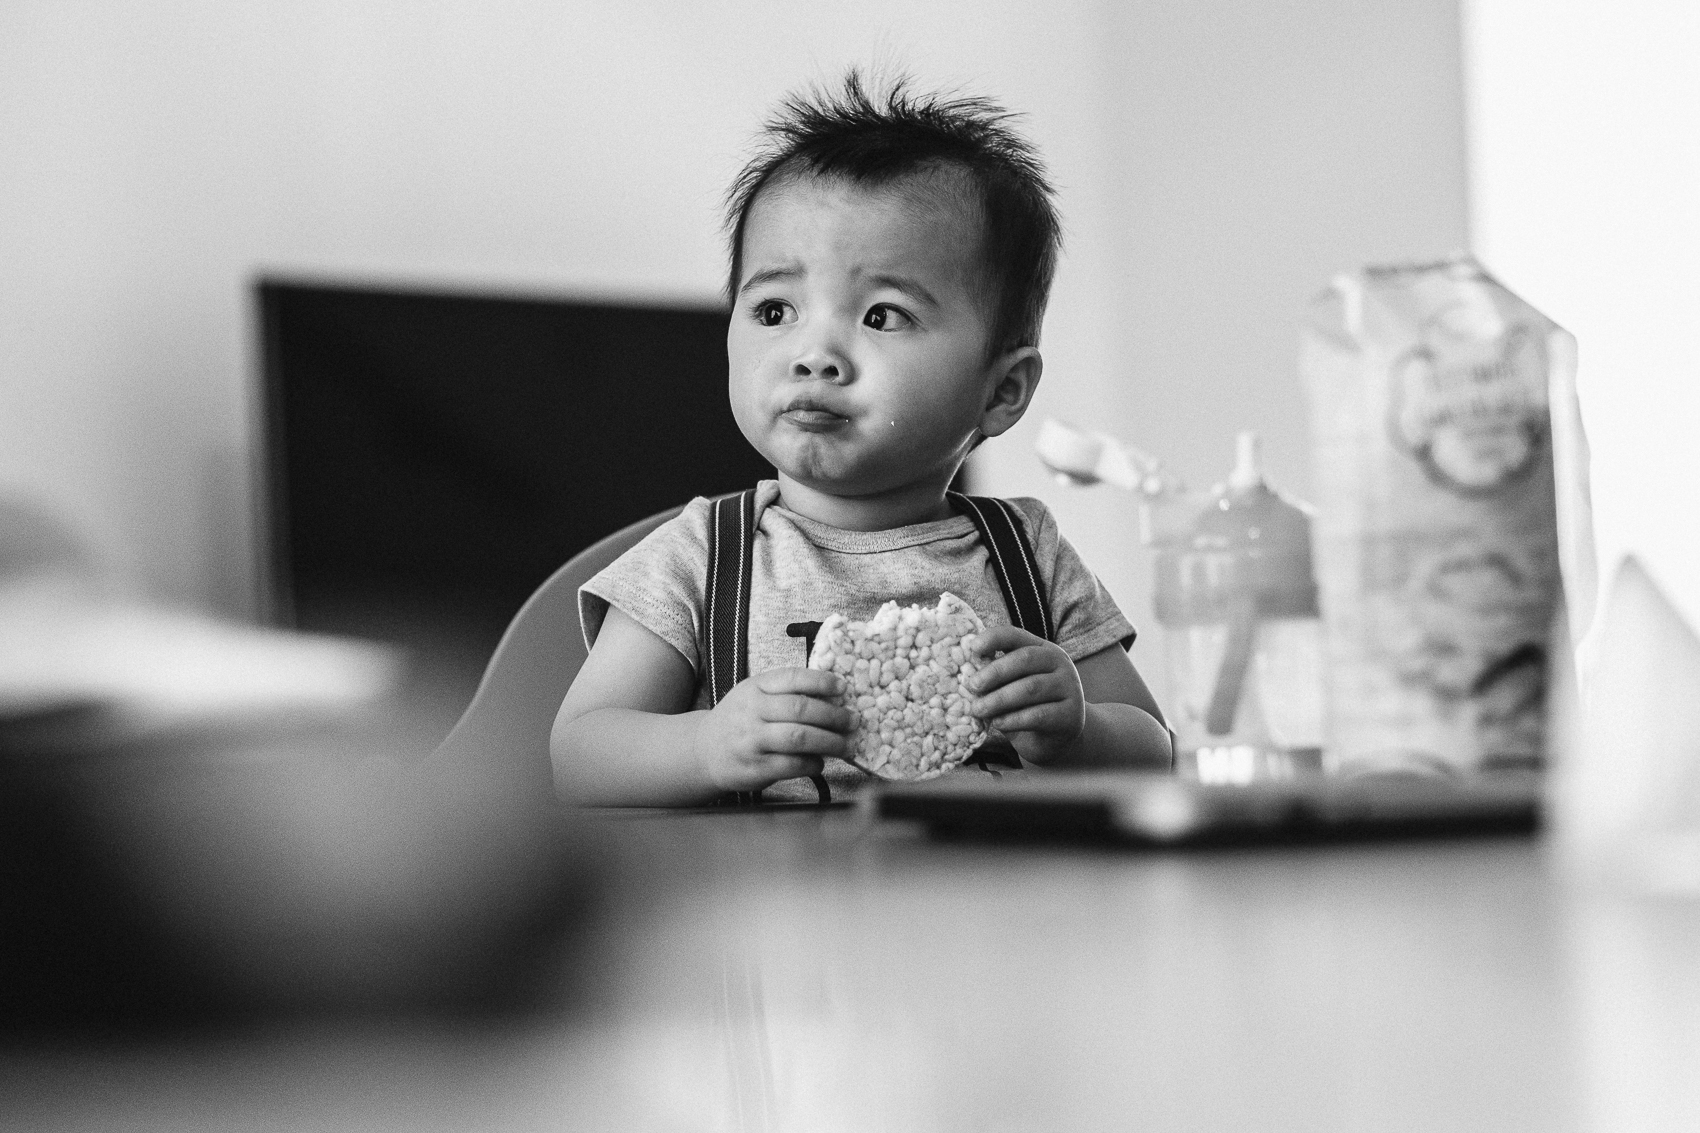 iso800 - Day in the life Thomas-3.jpg